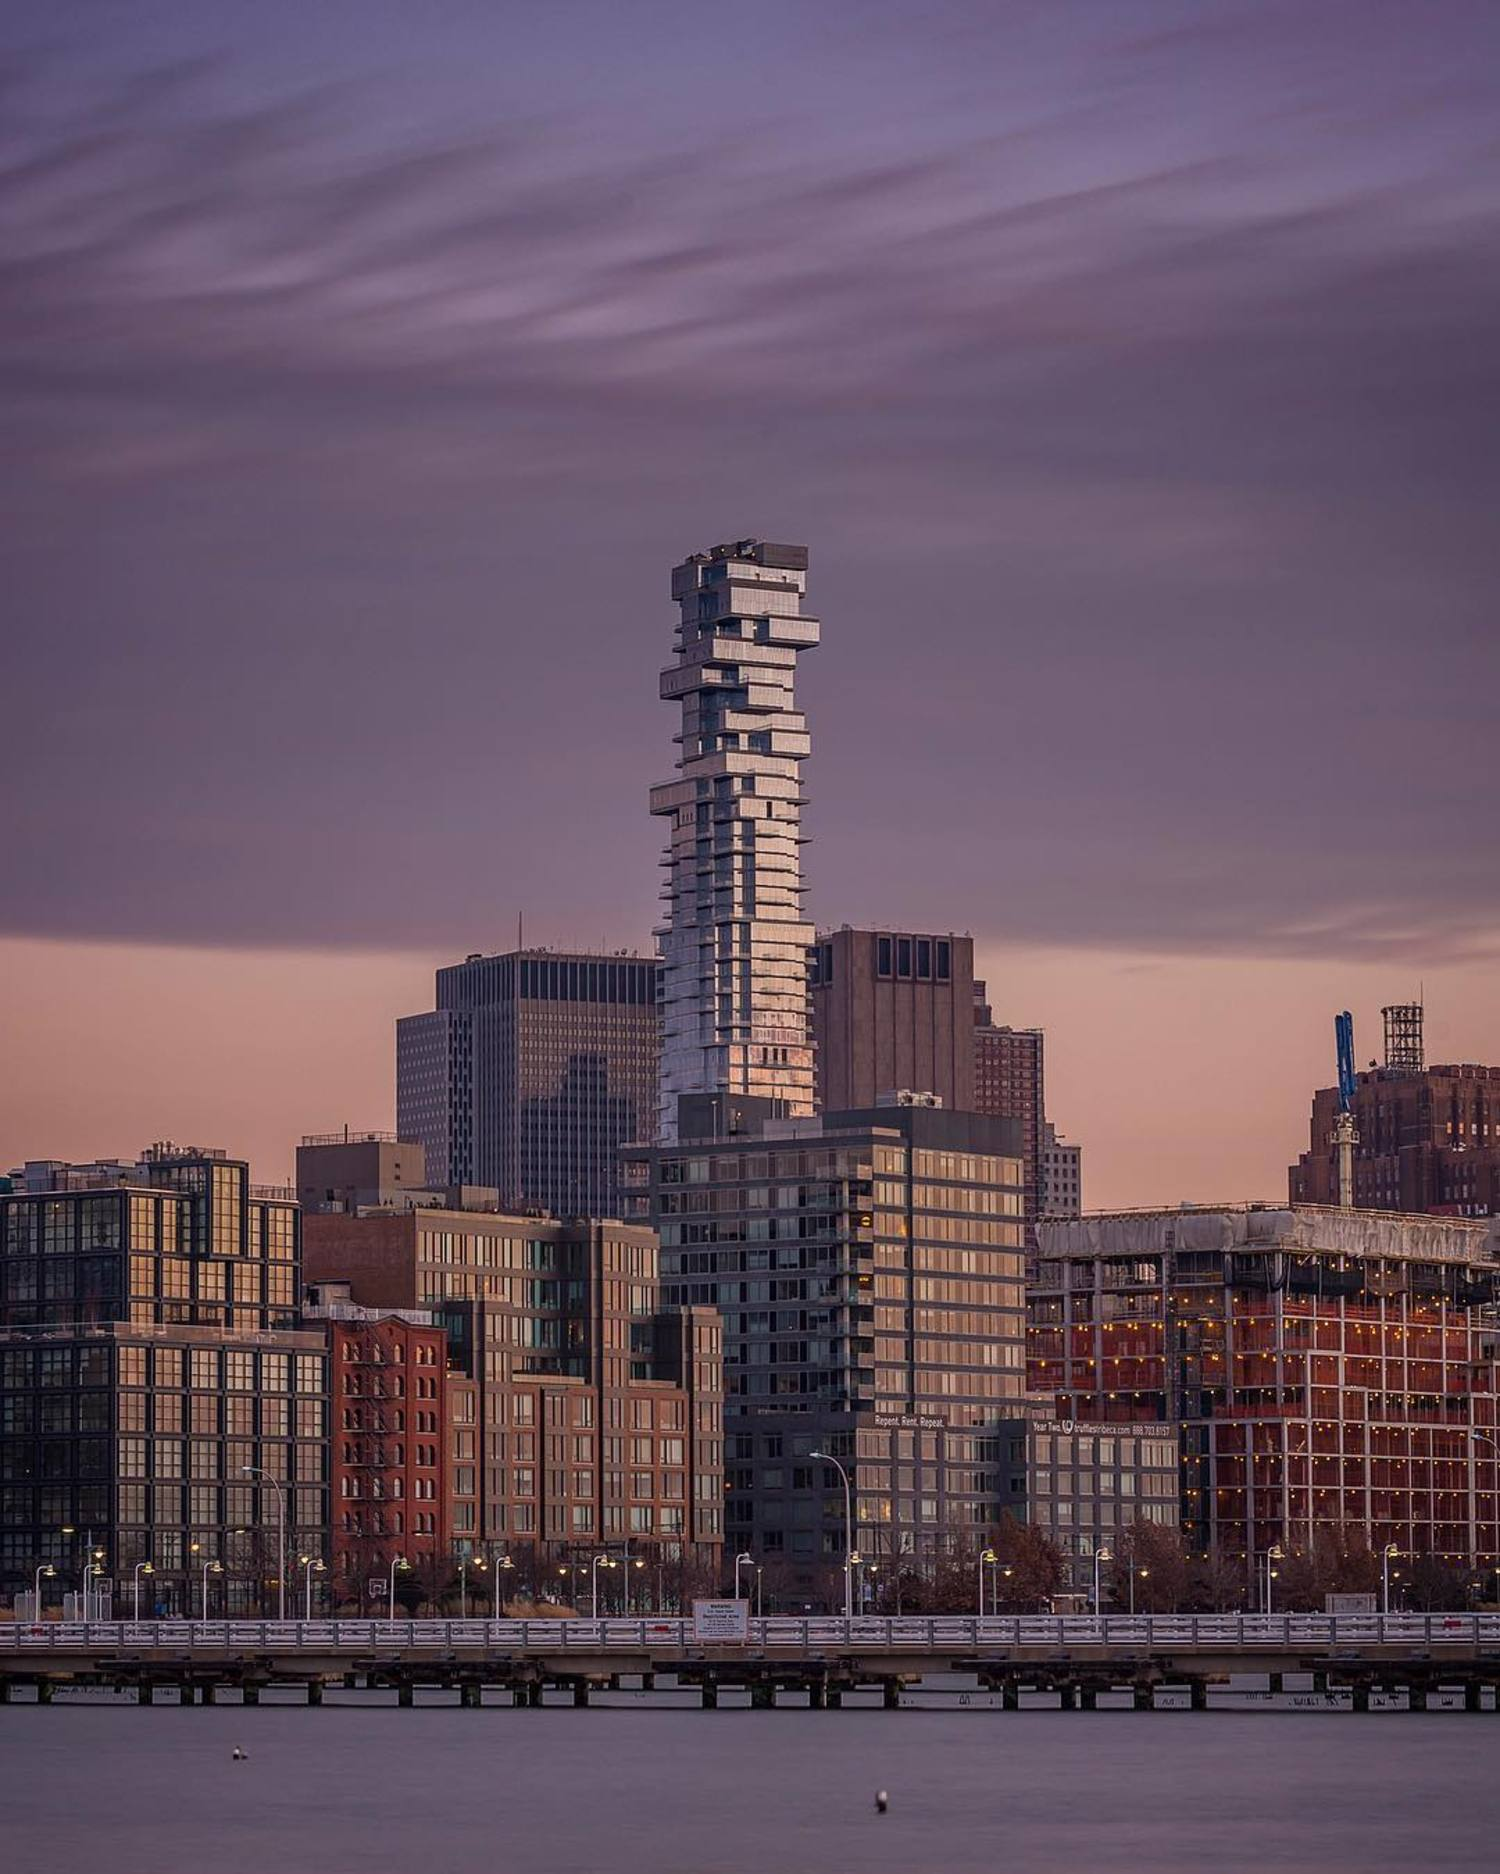 56 Leonard Street rising high as the tallest in TriBeCa ✰